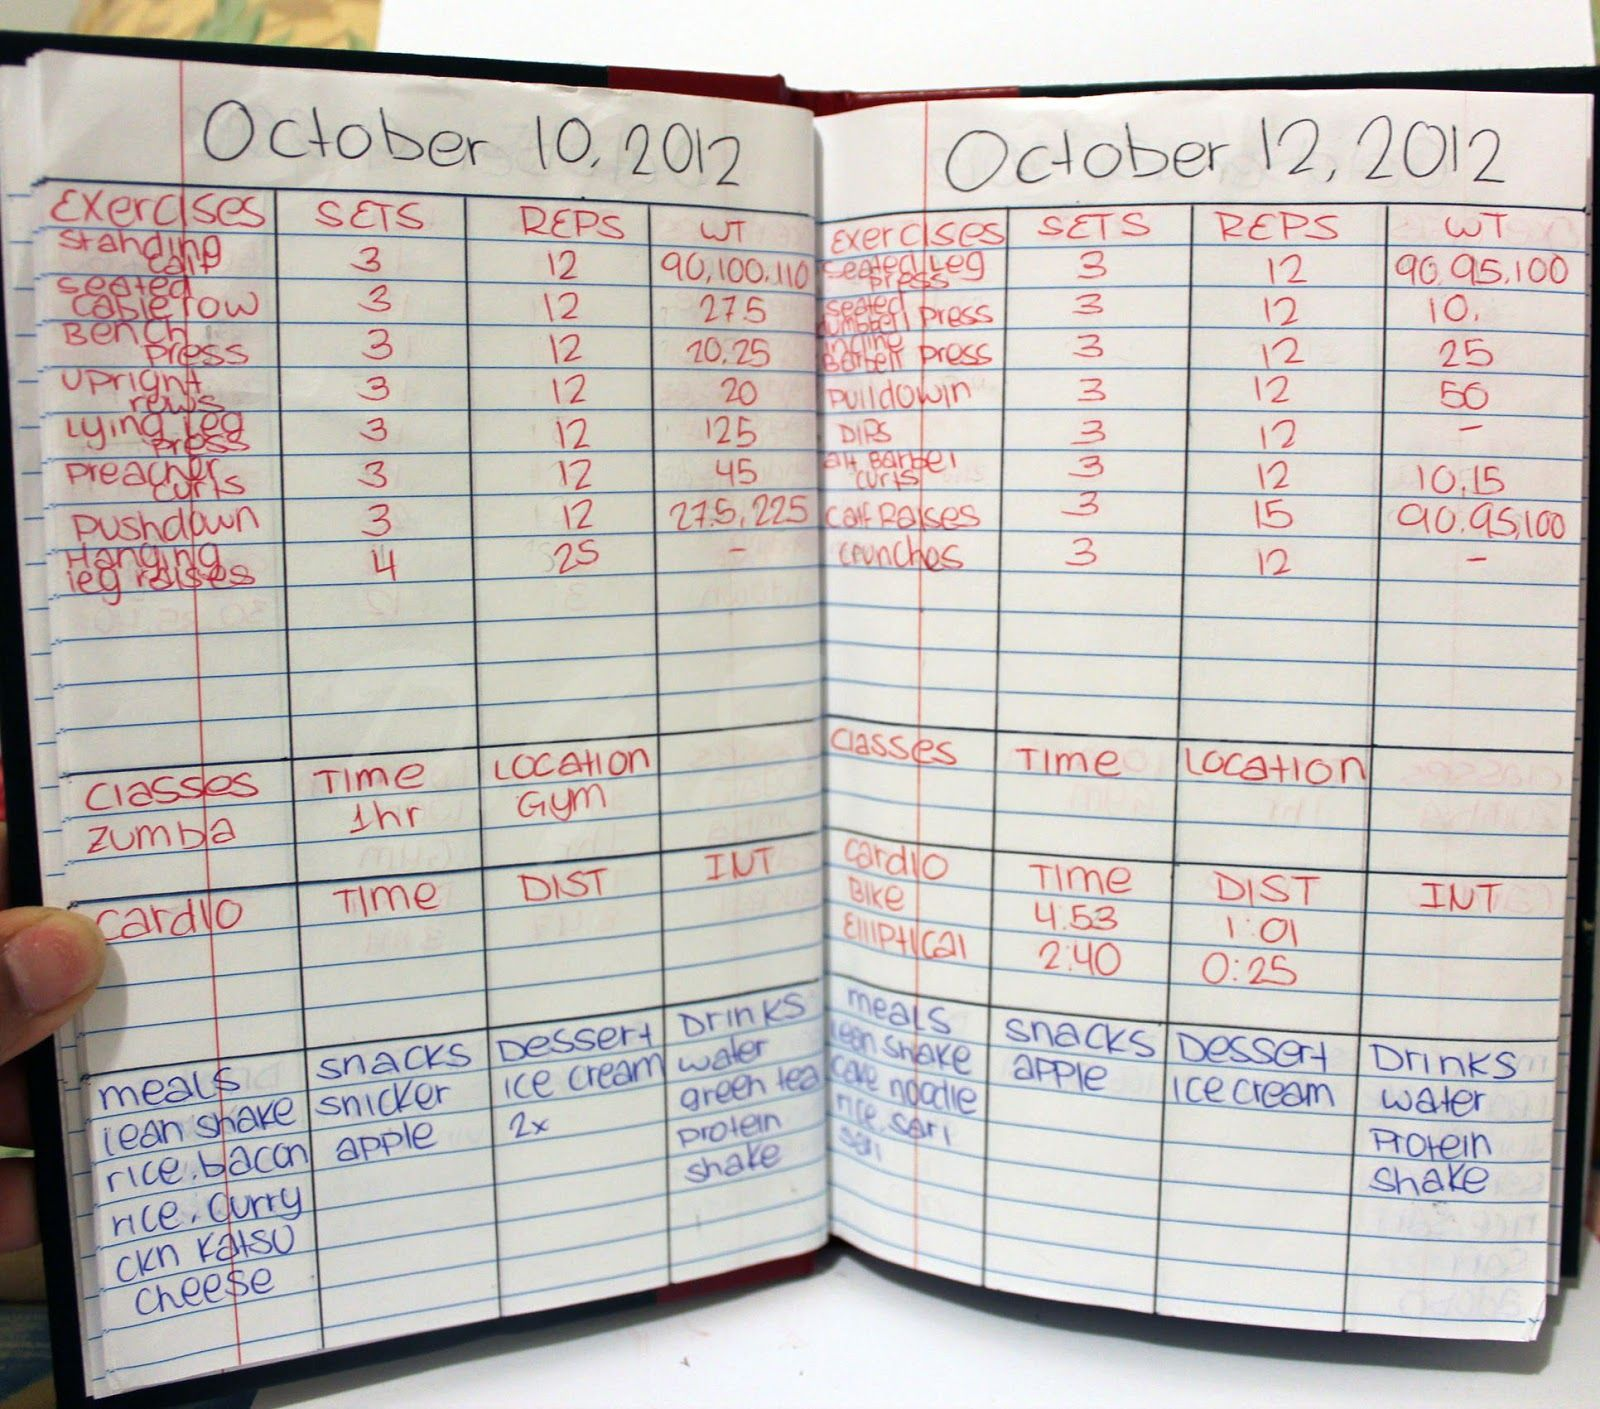 i used to keep a workout log book it was really helpful this